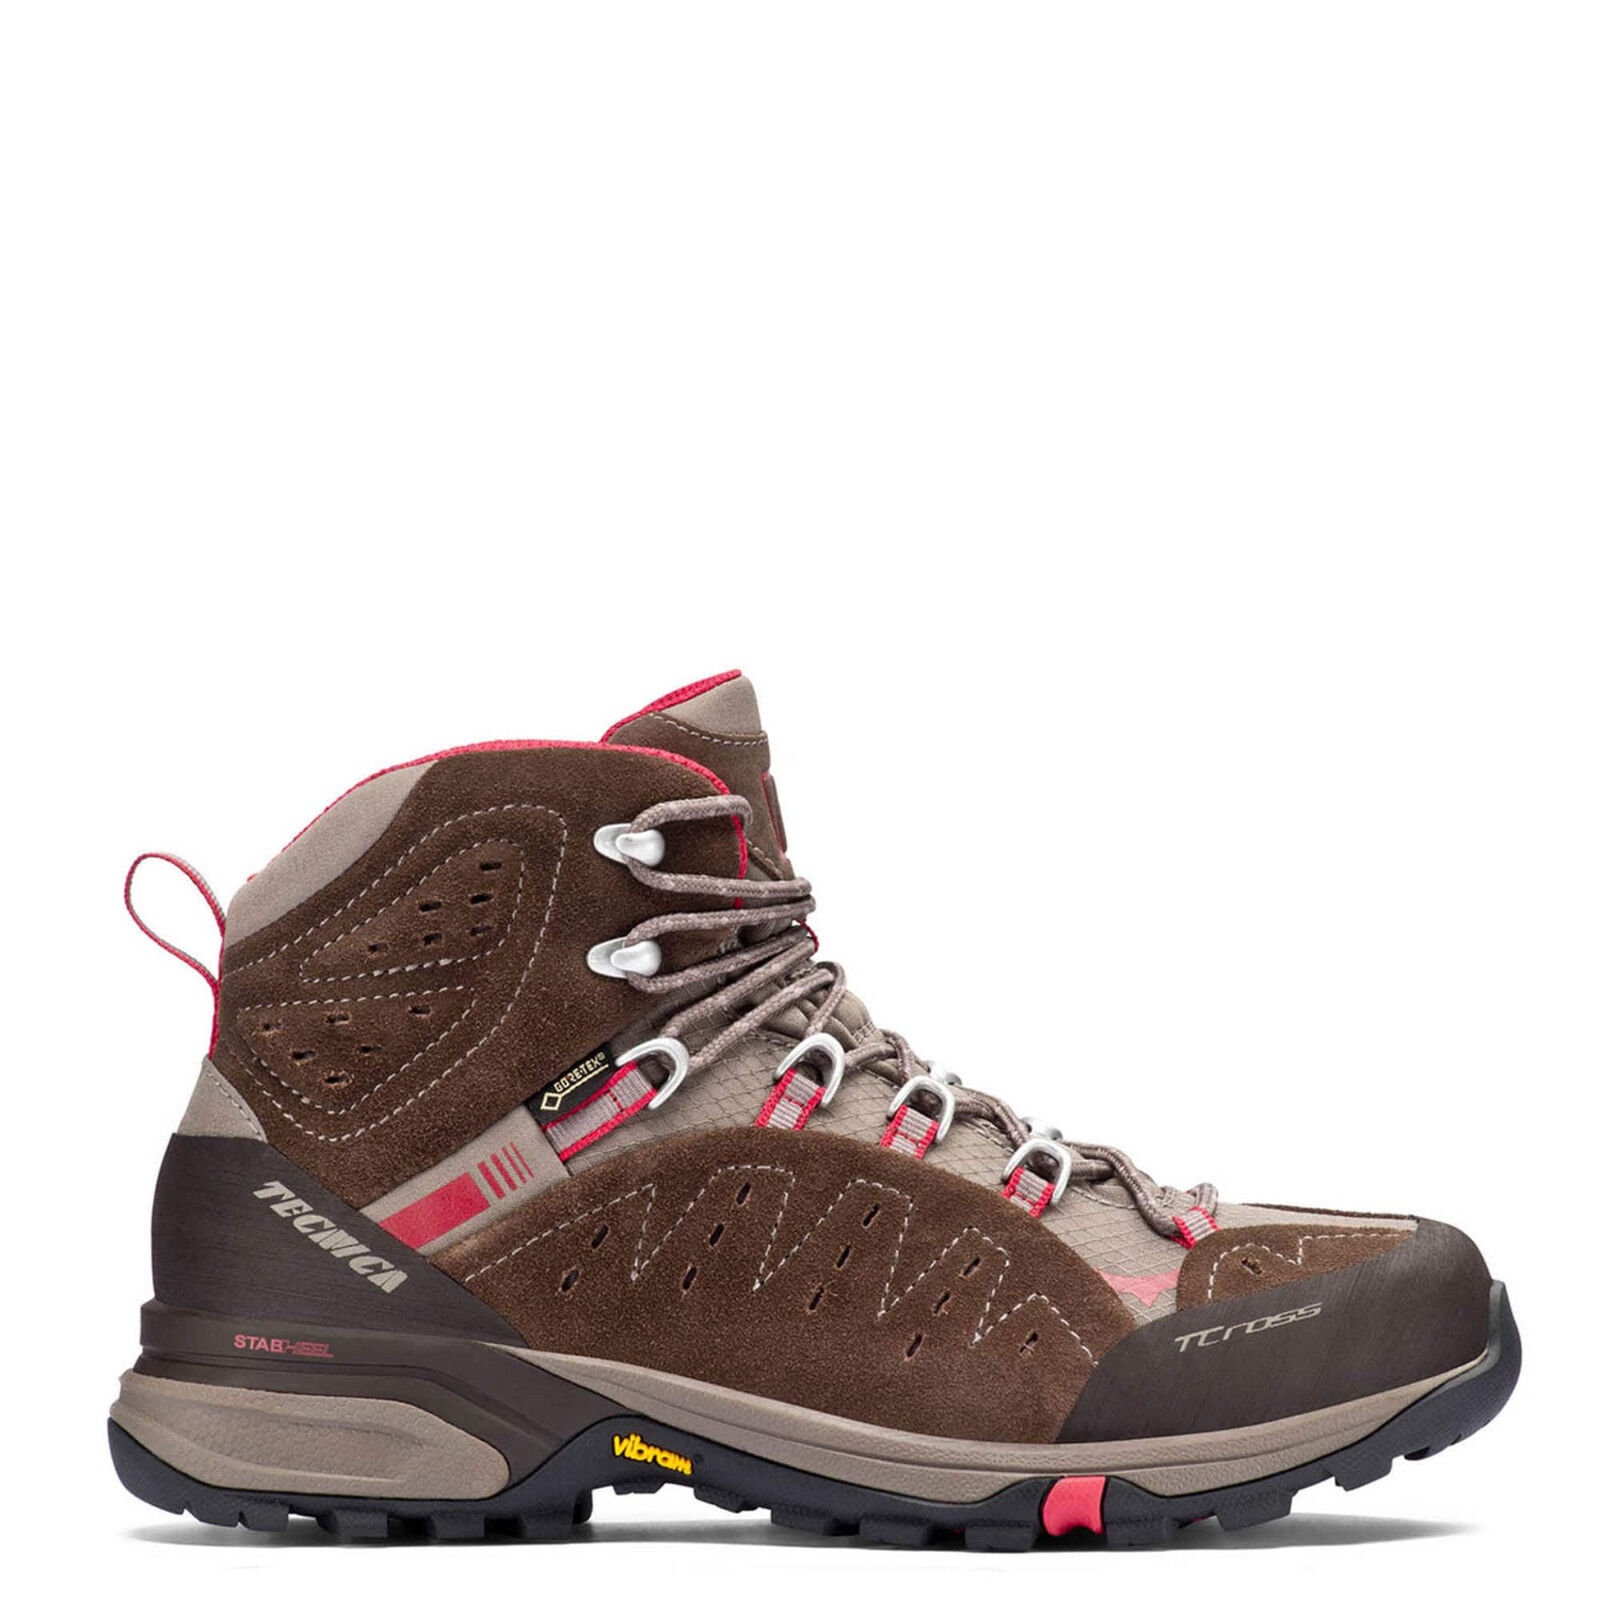 Tecnica Hiking shoes T-Cross High GTX WS Size 38  EU US 7 Ladies Brown MN j18  big discount prices